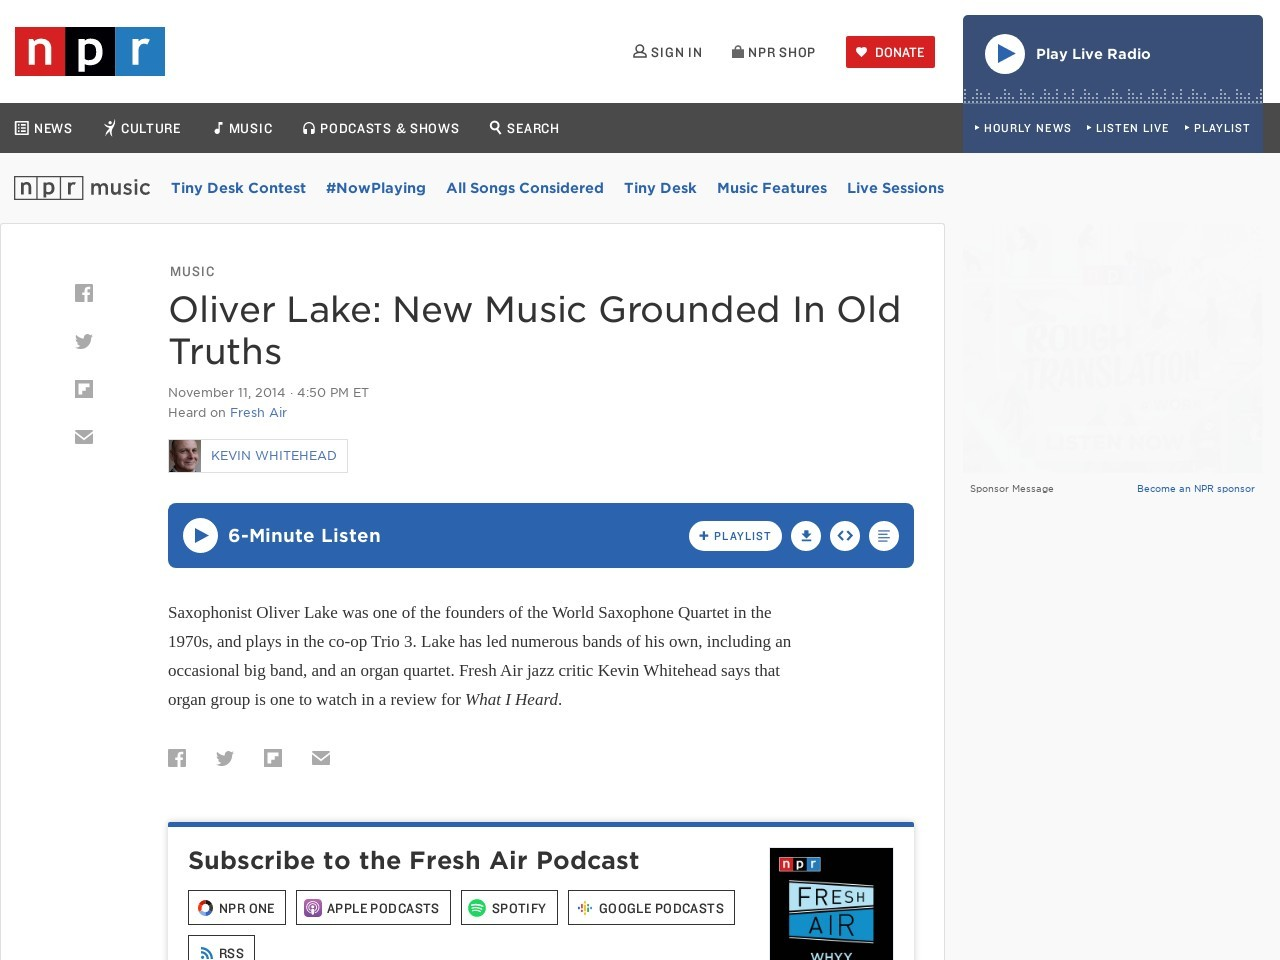 Oliver Lake: New Music Grounded In Old Truths